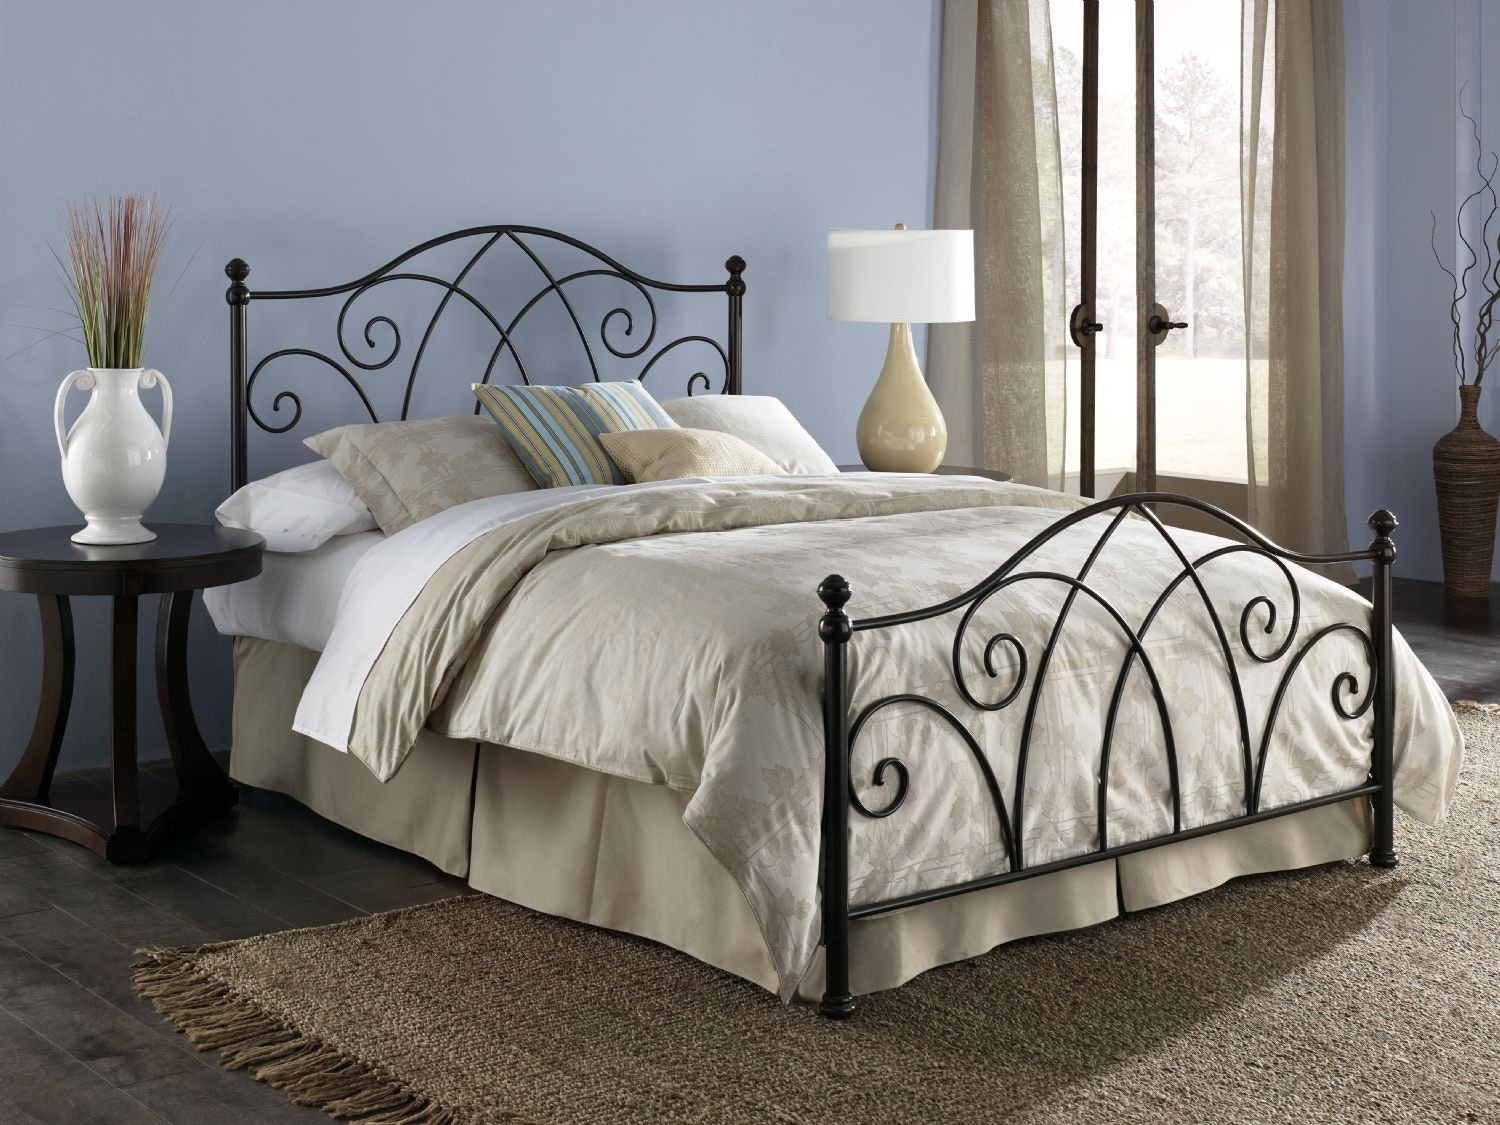 Fashion Bed Group Bedroom Deland 5/0 Bed With Out Frame Brown Sparkle  B10A15   Carol House Furniture   Maryland Heights And Valley Park, MO